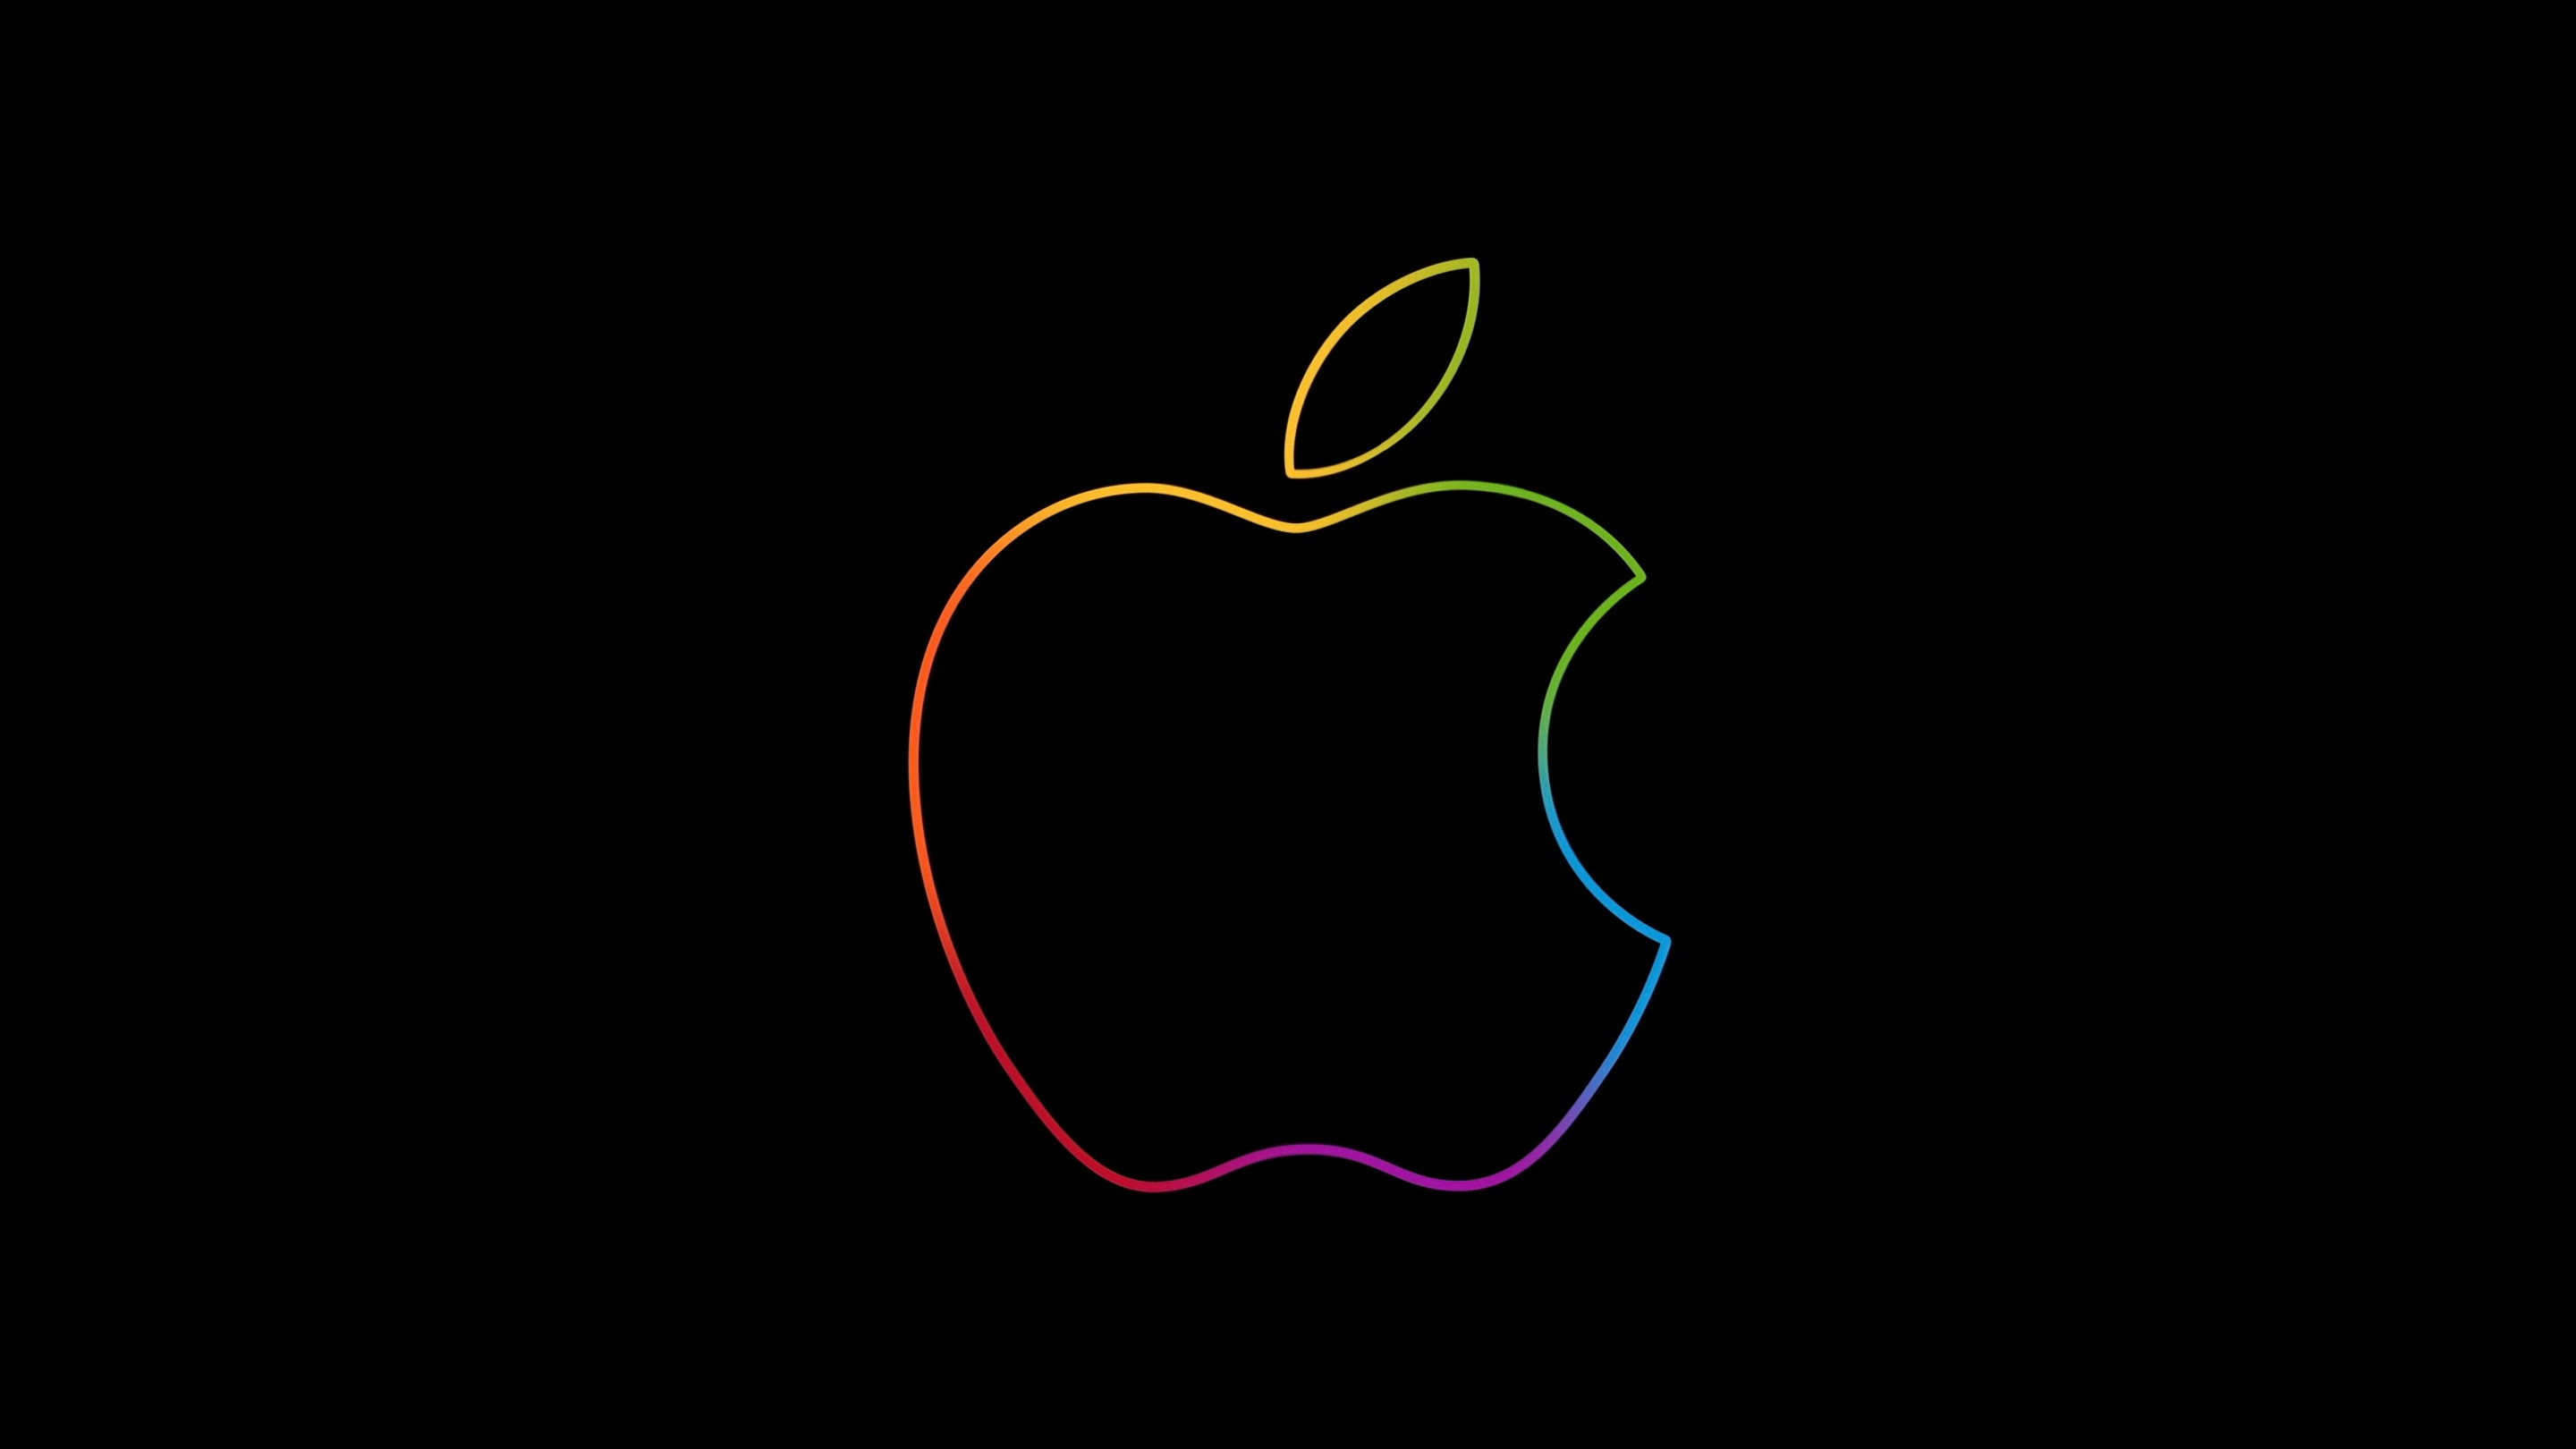 The famous Apple logo wallpaper 2880x1620